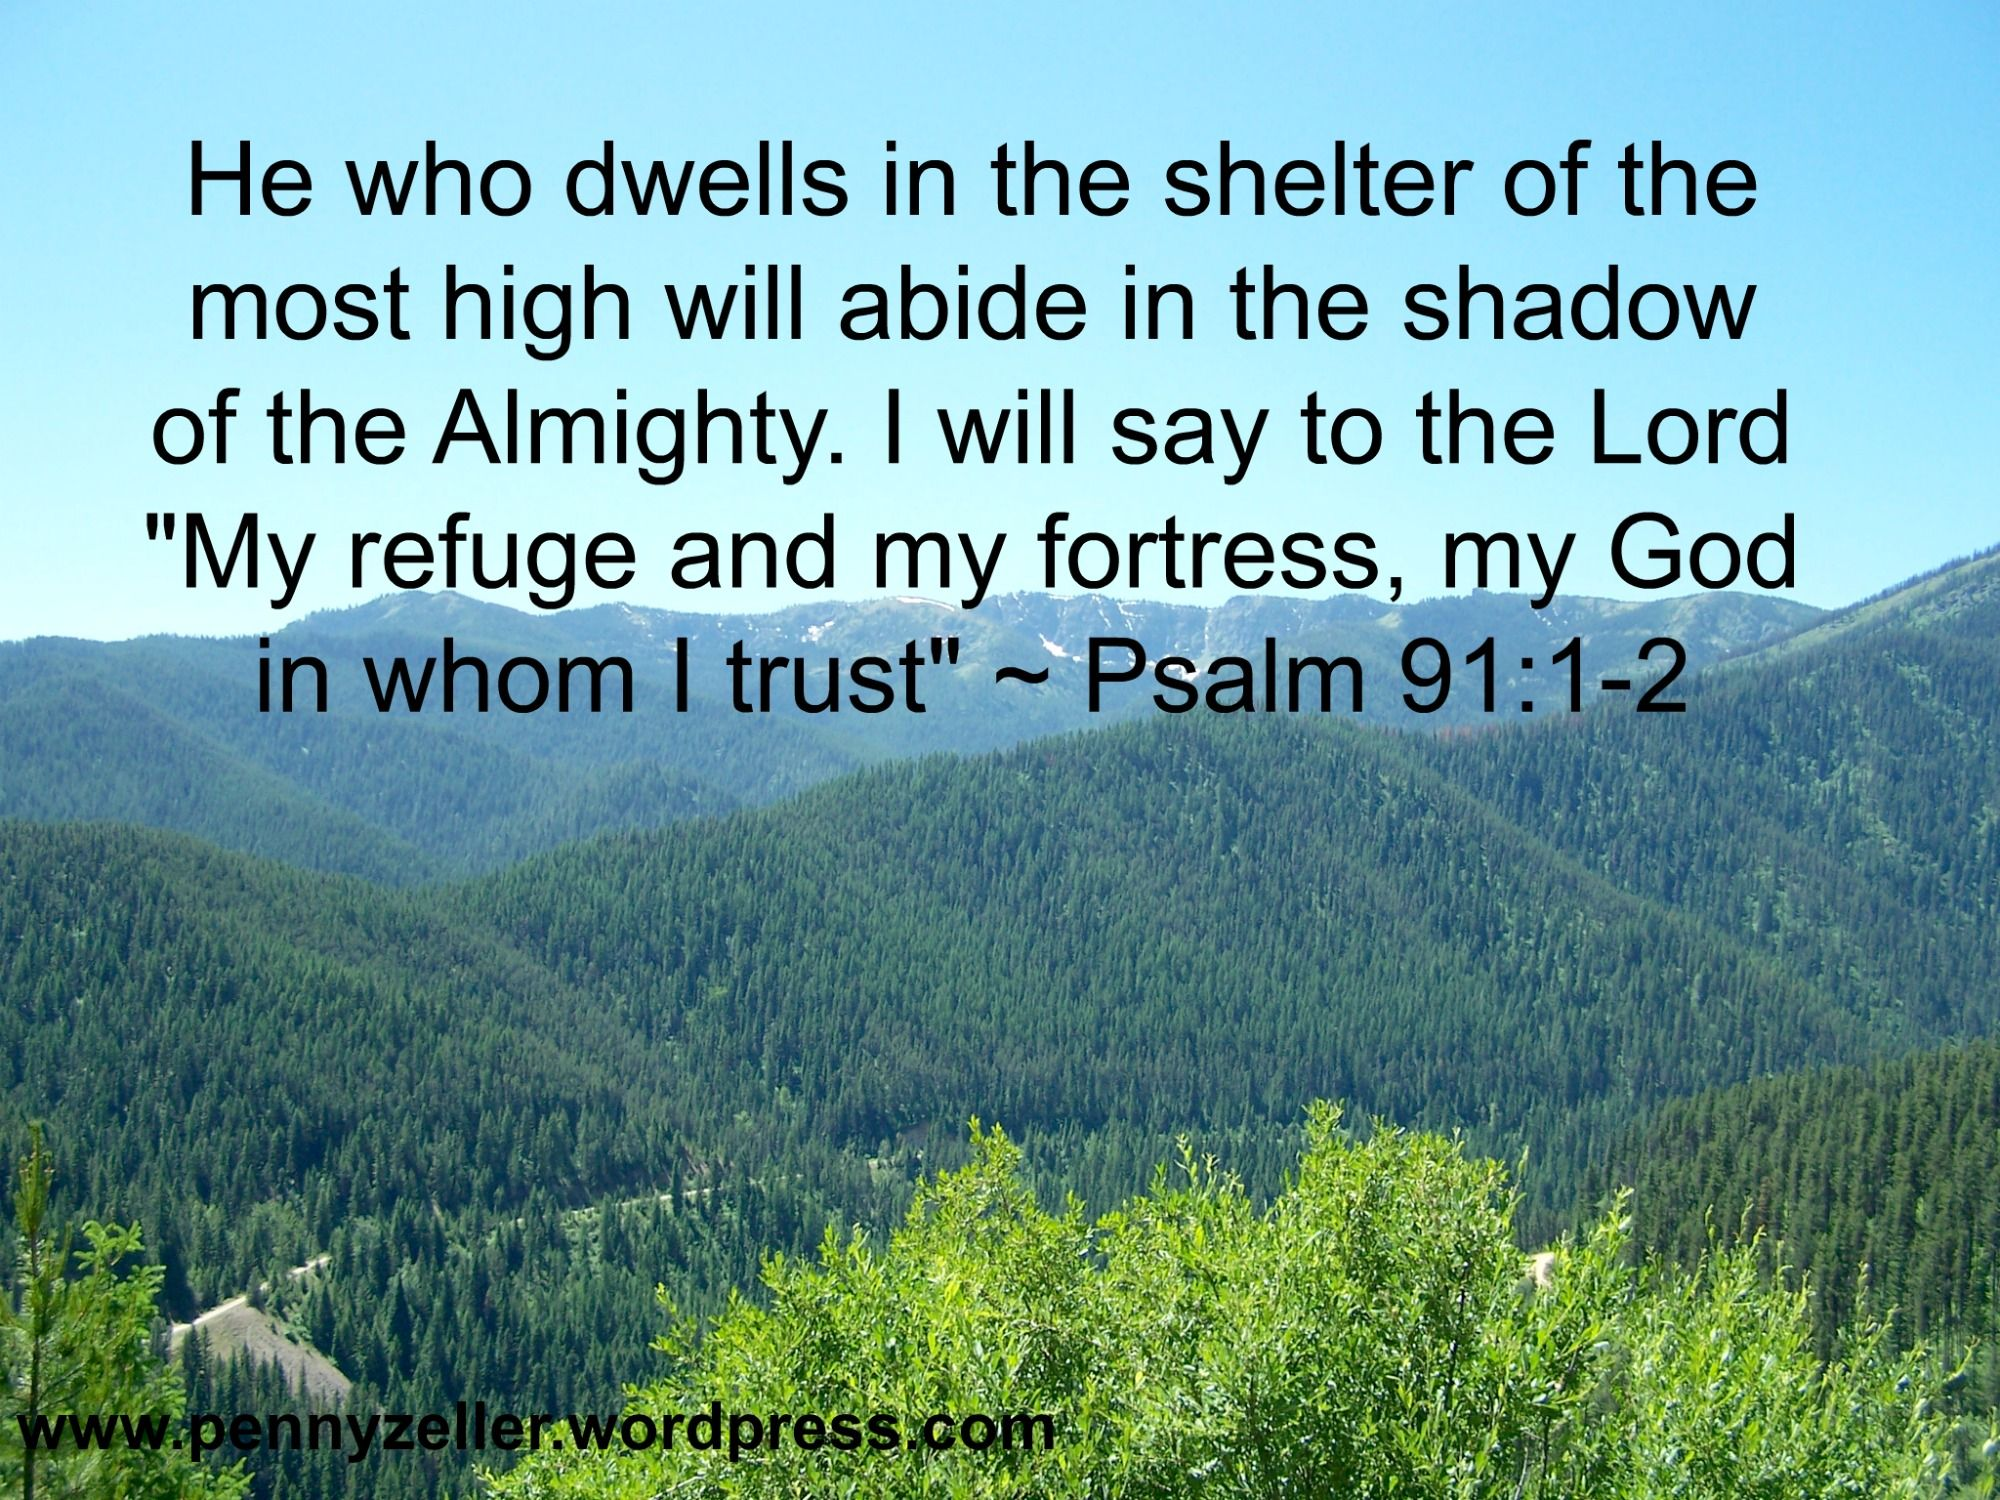 he who dwells in the shelter of the most high will abide in the he who dwells in the shelter of the most high will abide in the shadow of the almighty i will say to the lord my refuge and my fortress